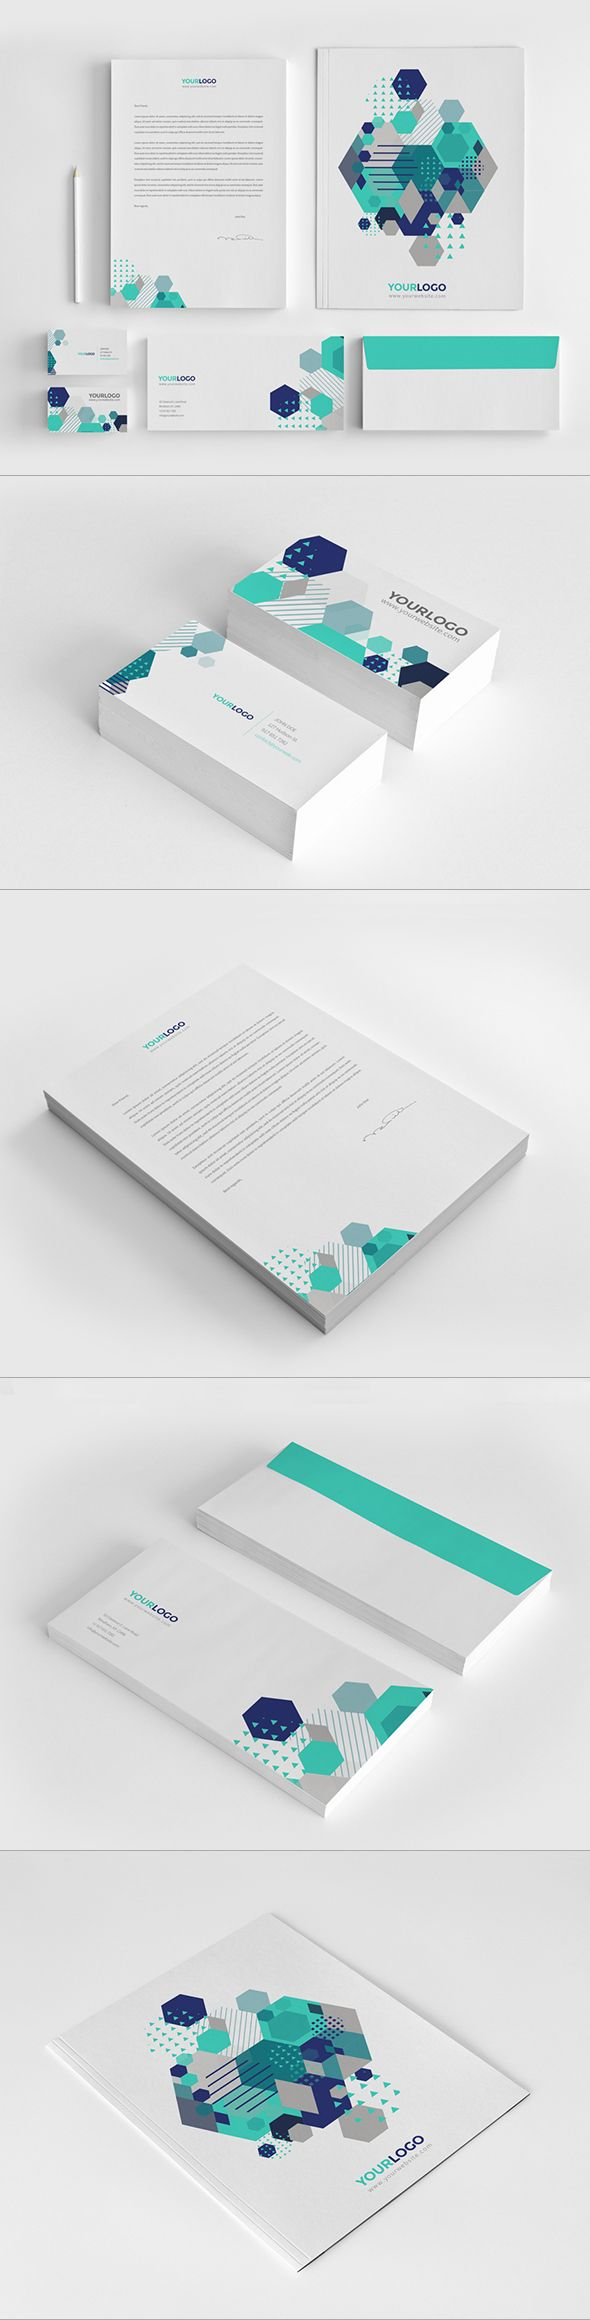 Abstract Modern Stationery Pack by Abra Design